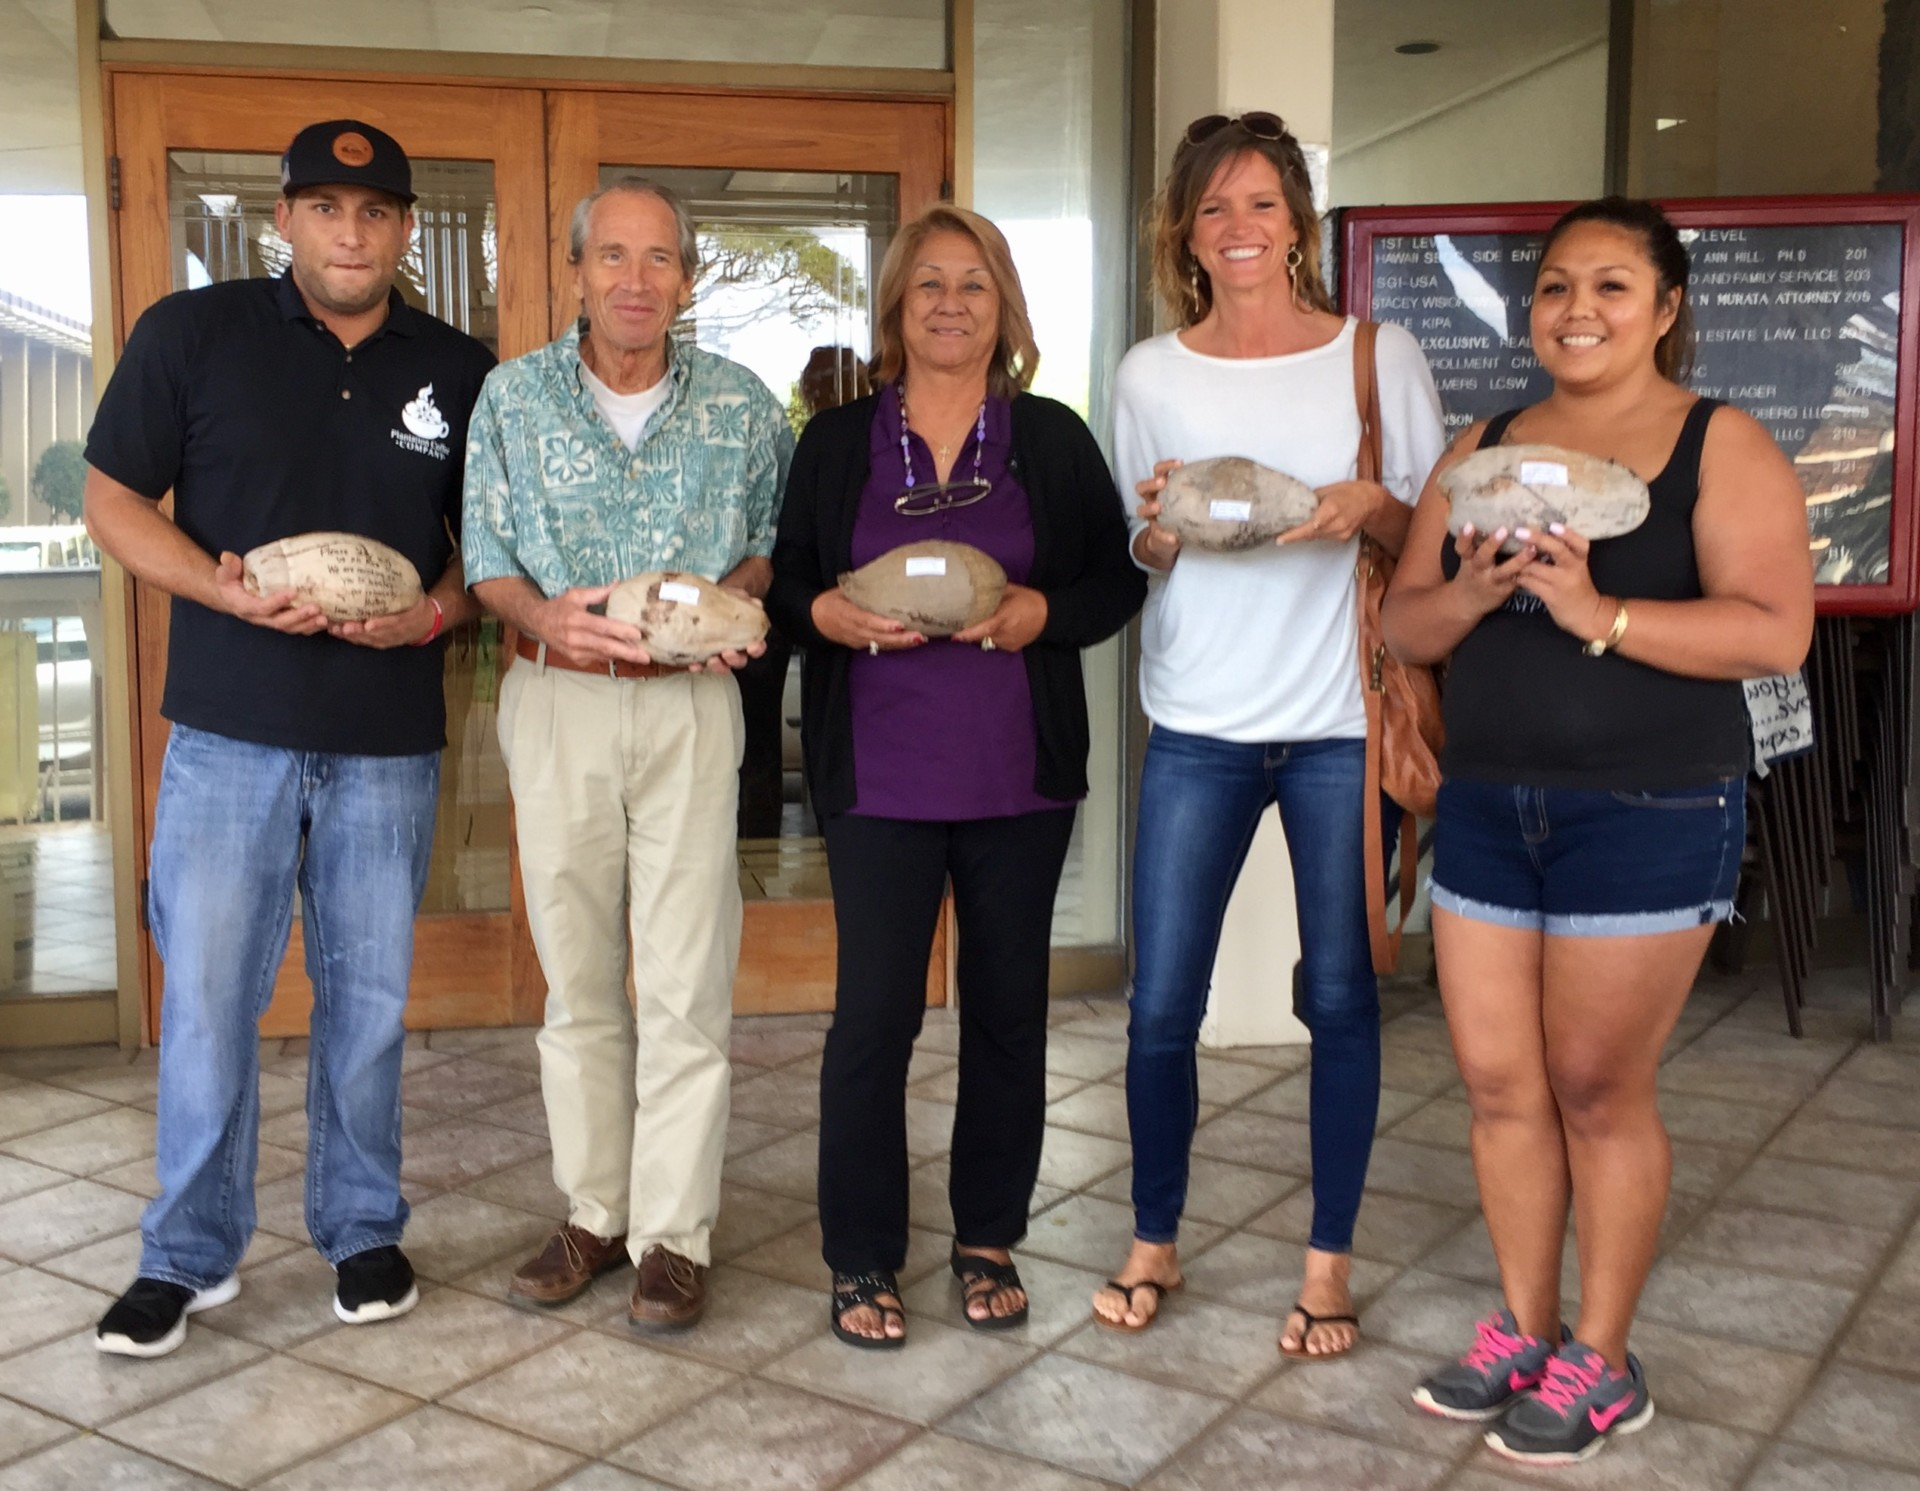 Lihue residents mailing coconuts to the USPS in support of keeping historic Lihue Post Office open.